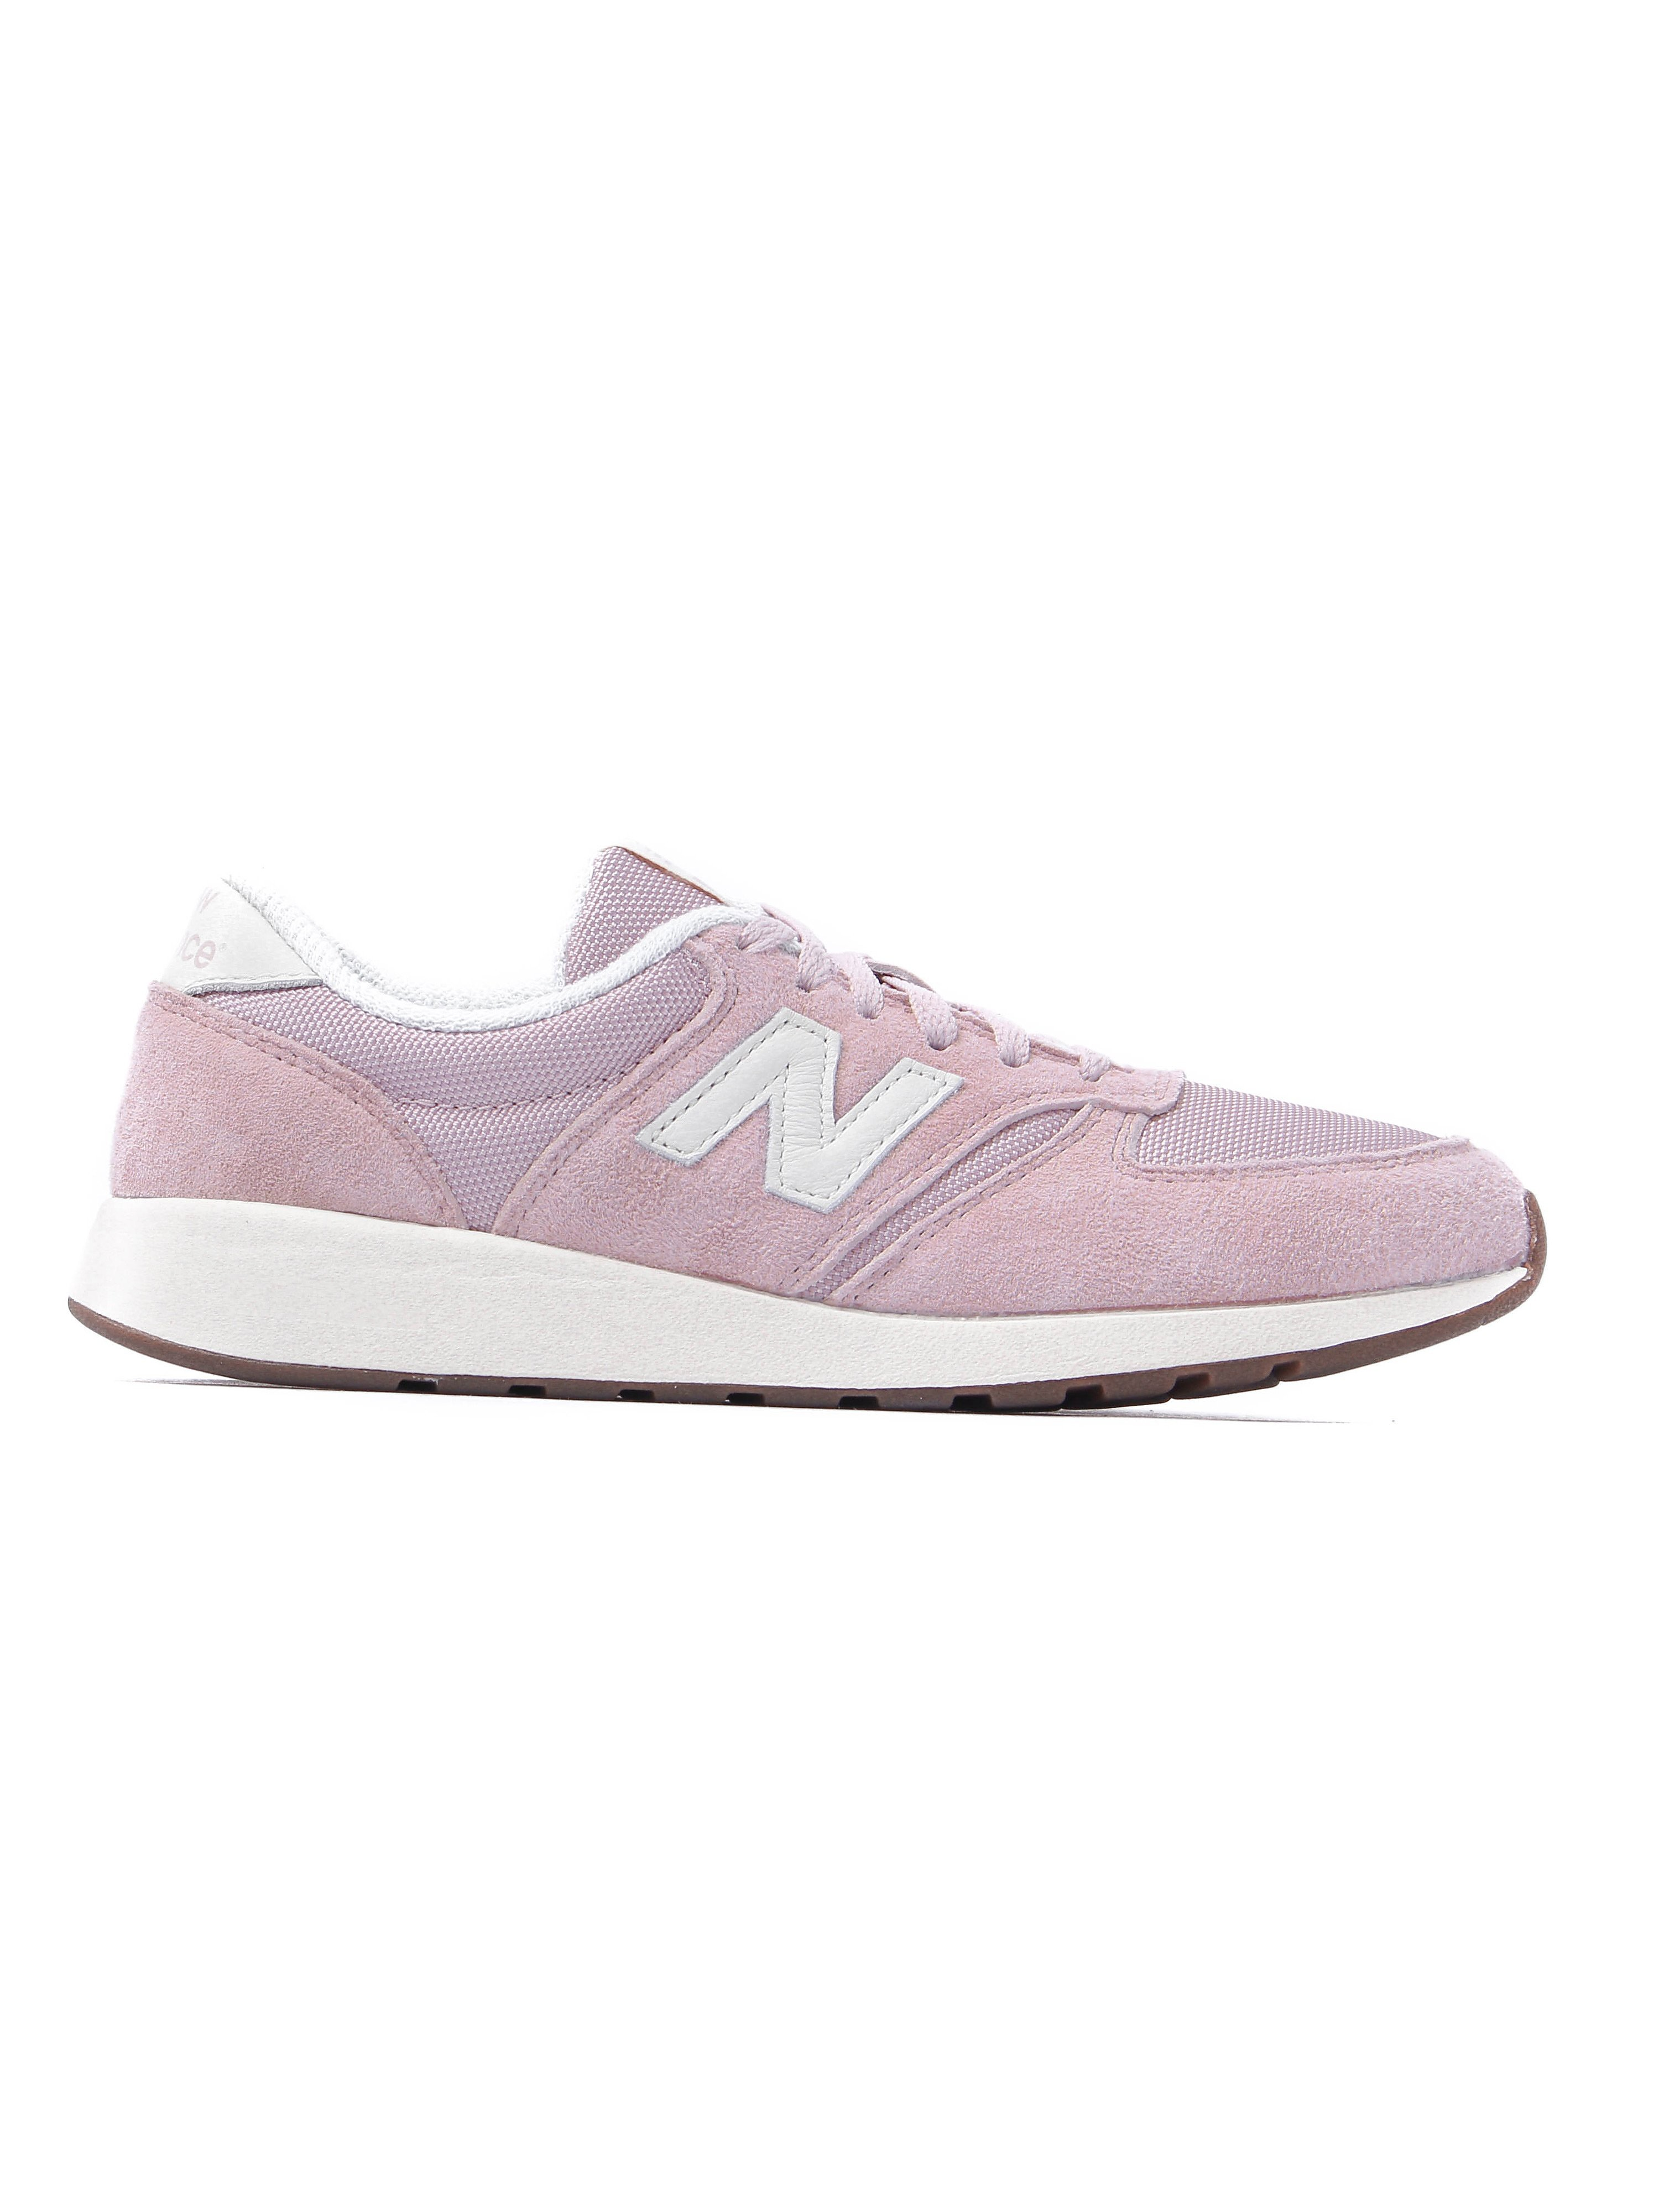 New Balance Women's 420 Trainers - Pink Suede